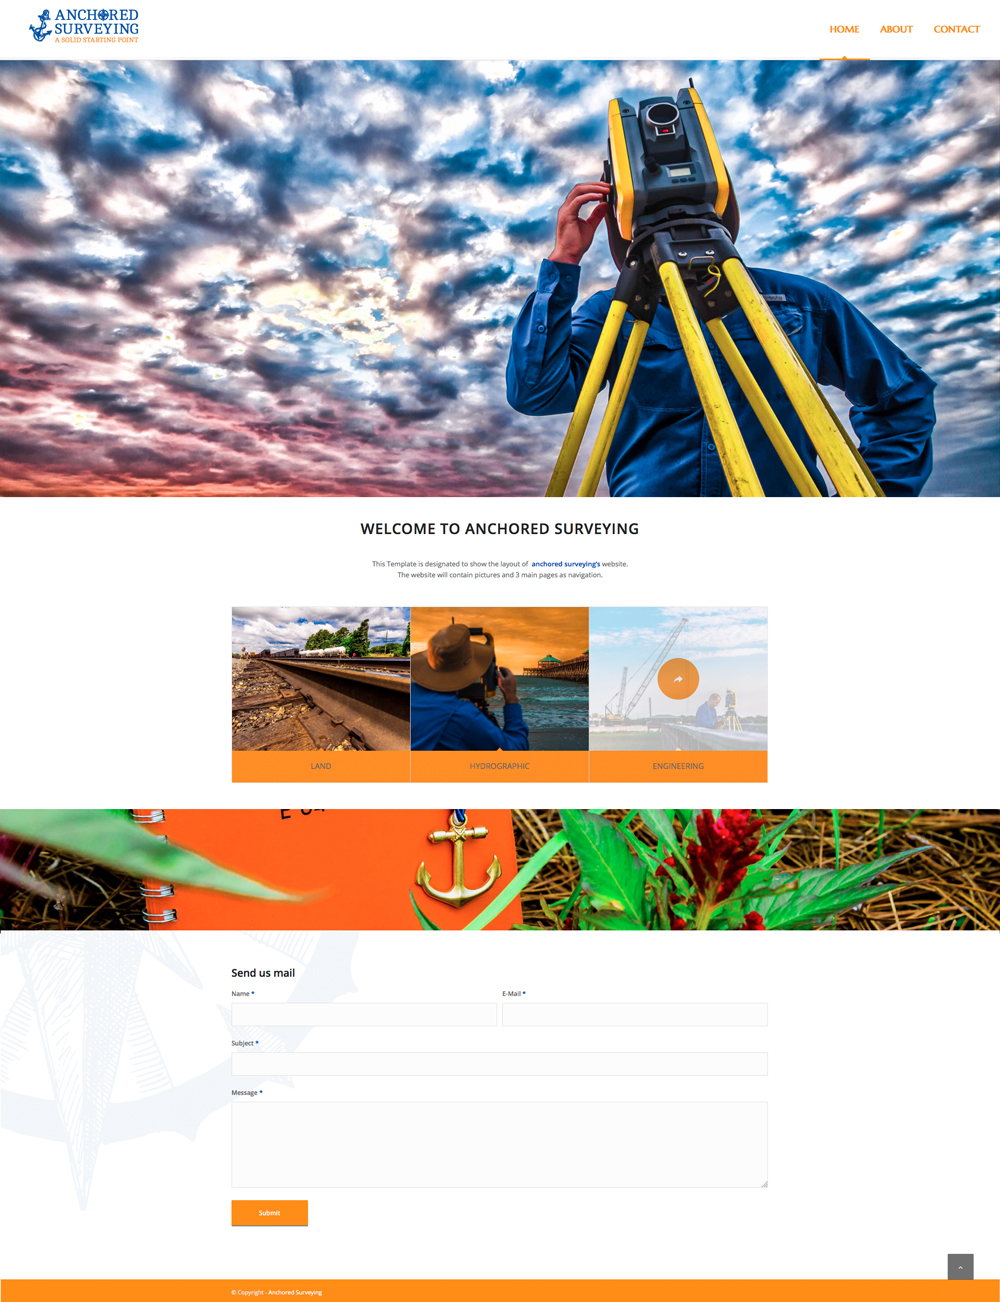 Anchored Surveying website layout